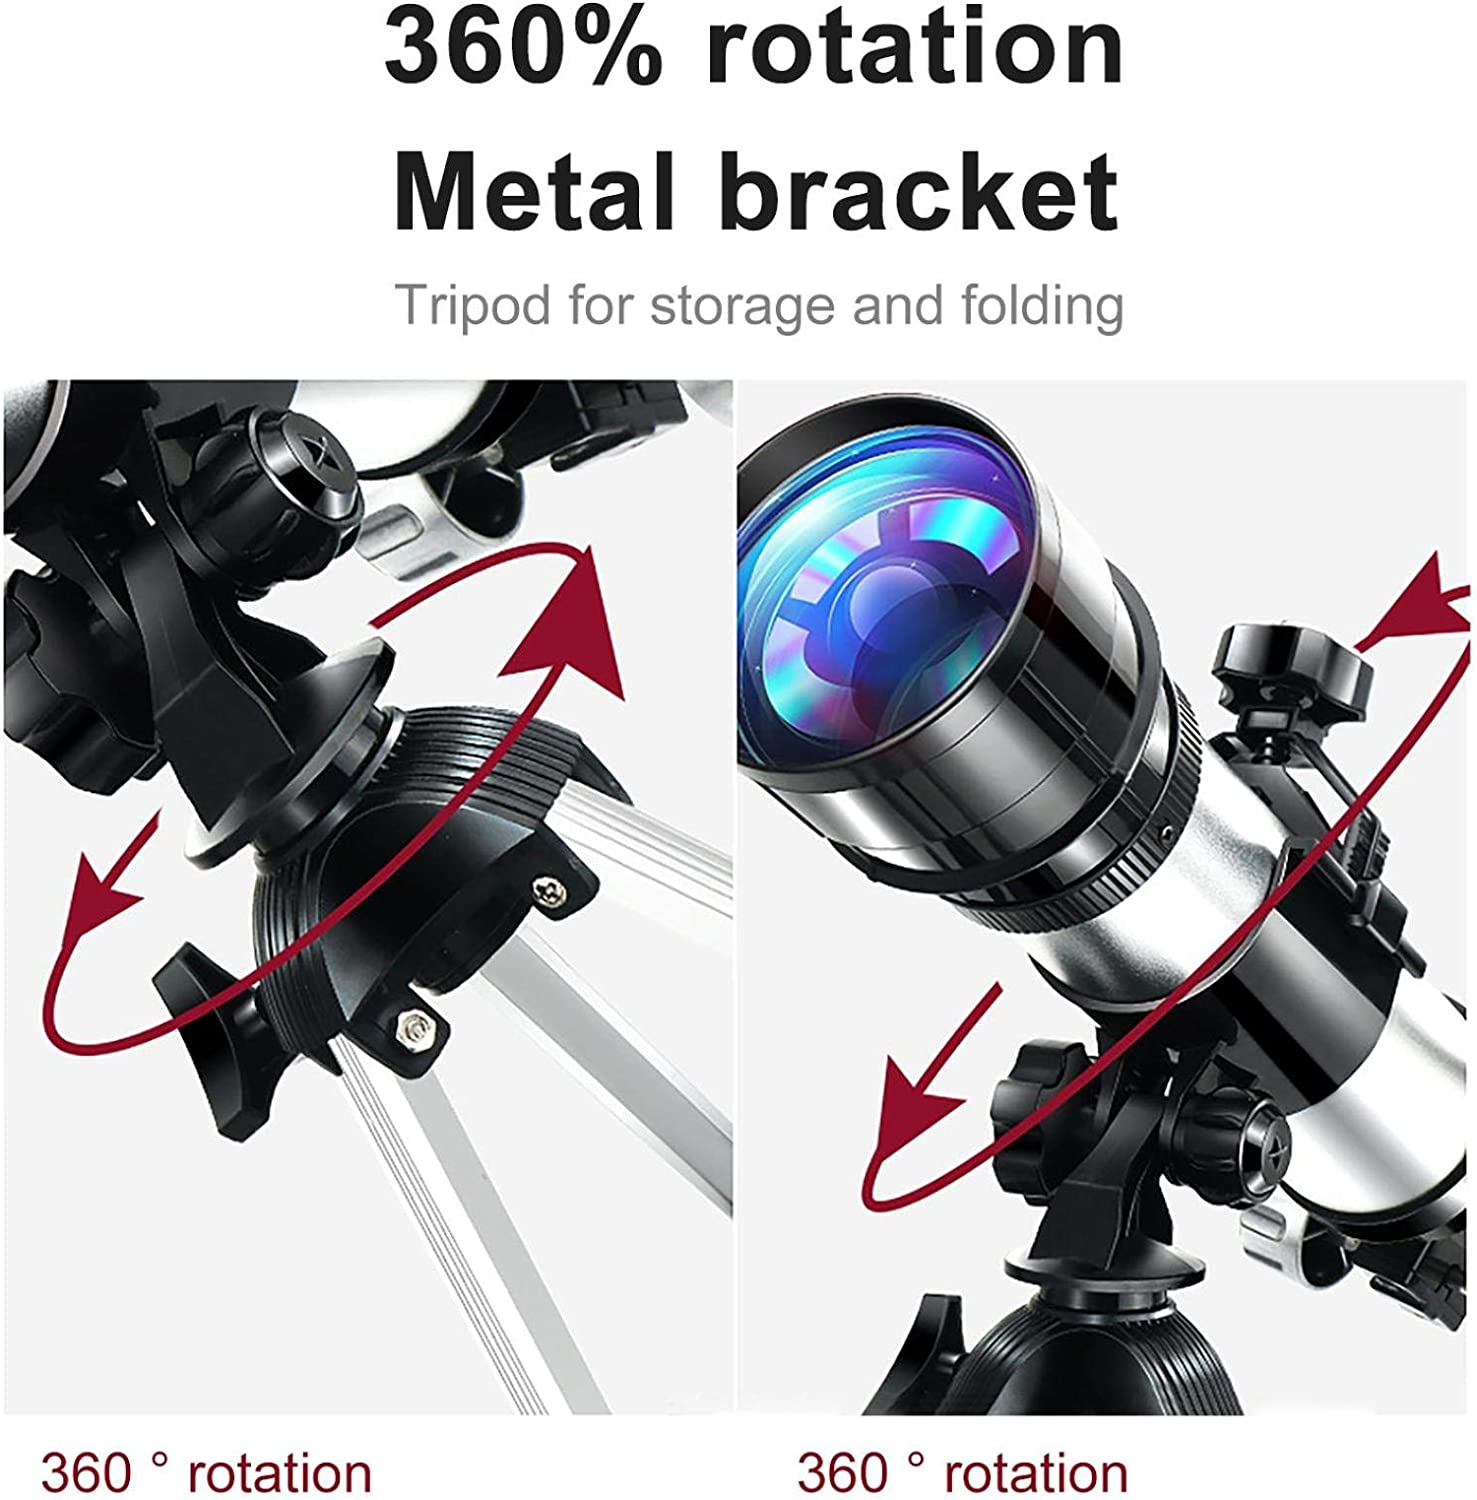 70mm Aperture Astronomical Refractor Travel Telescope with Tripod Astronomy Beginners Telescopes Gifts Astronomy Telescopes for Beginners /& Kids /& Adults Black